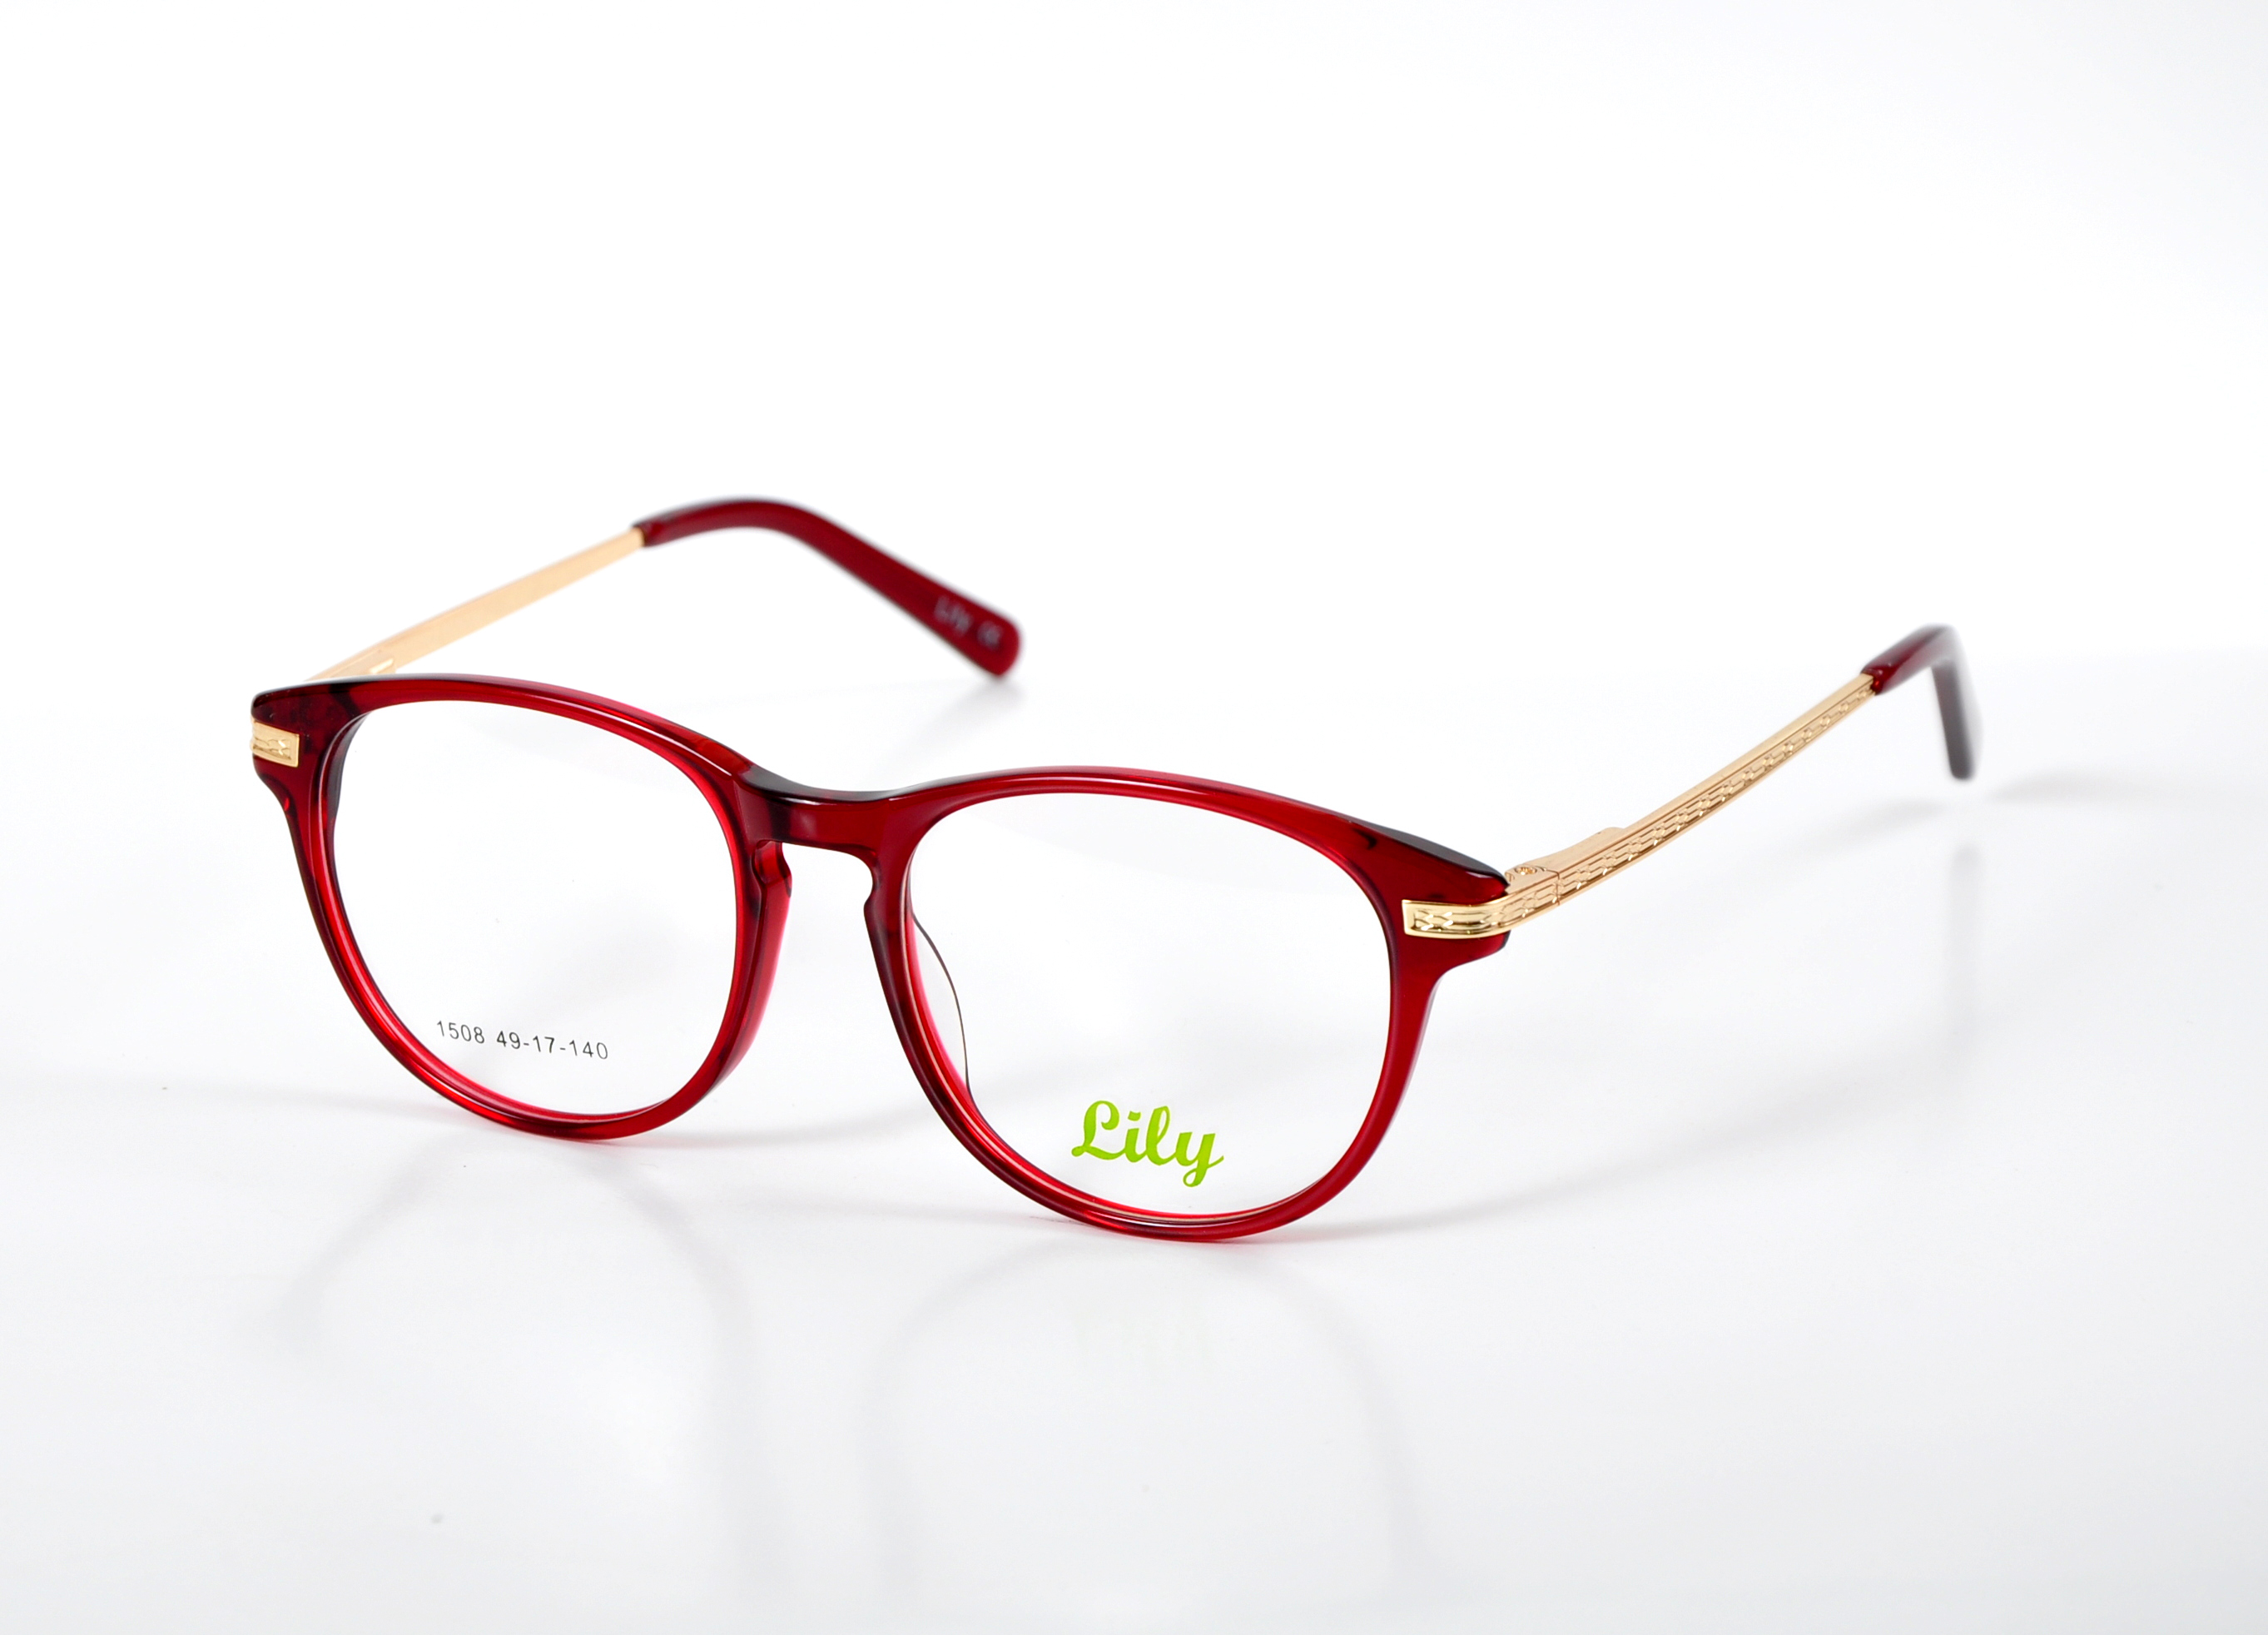 Lily 1508